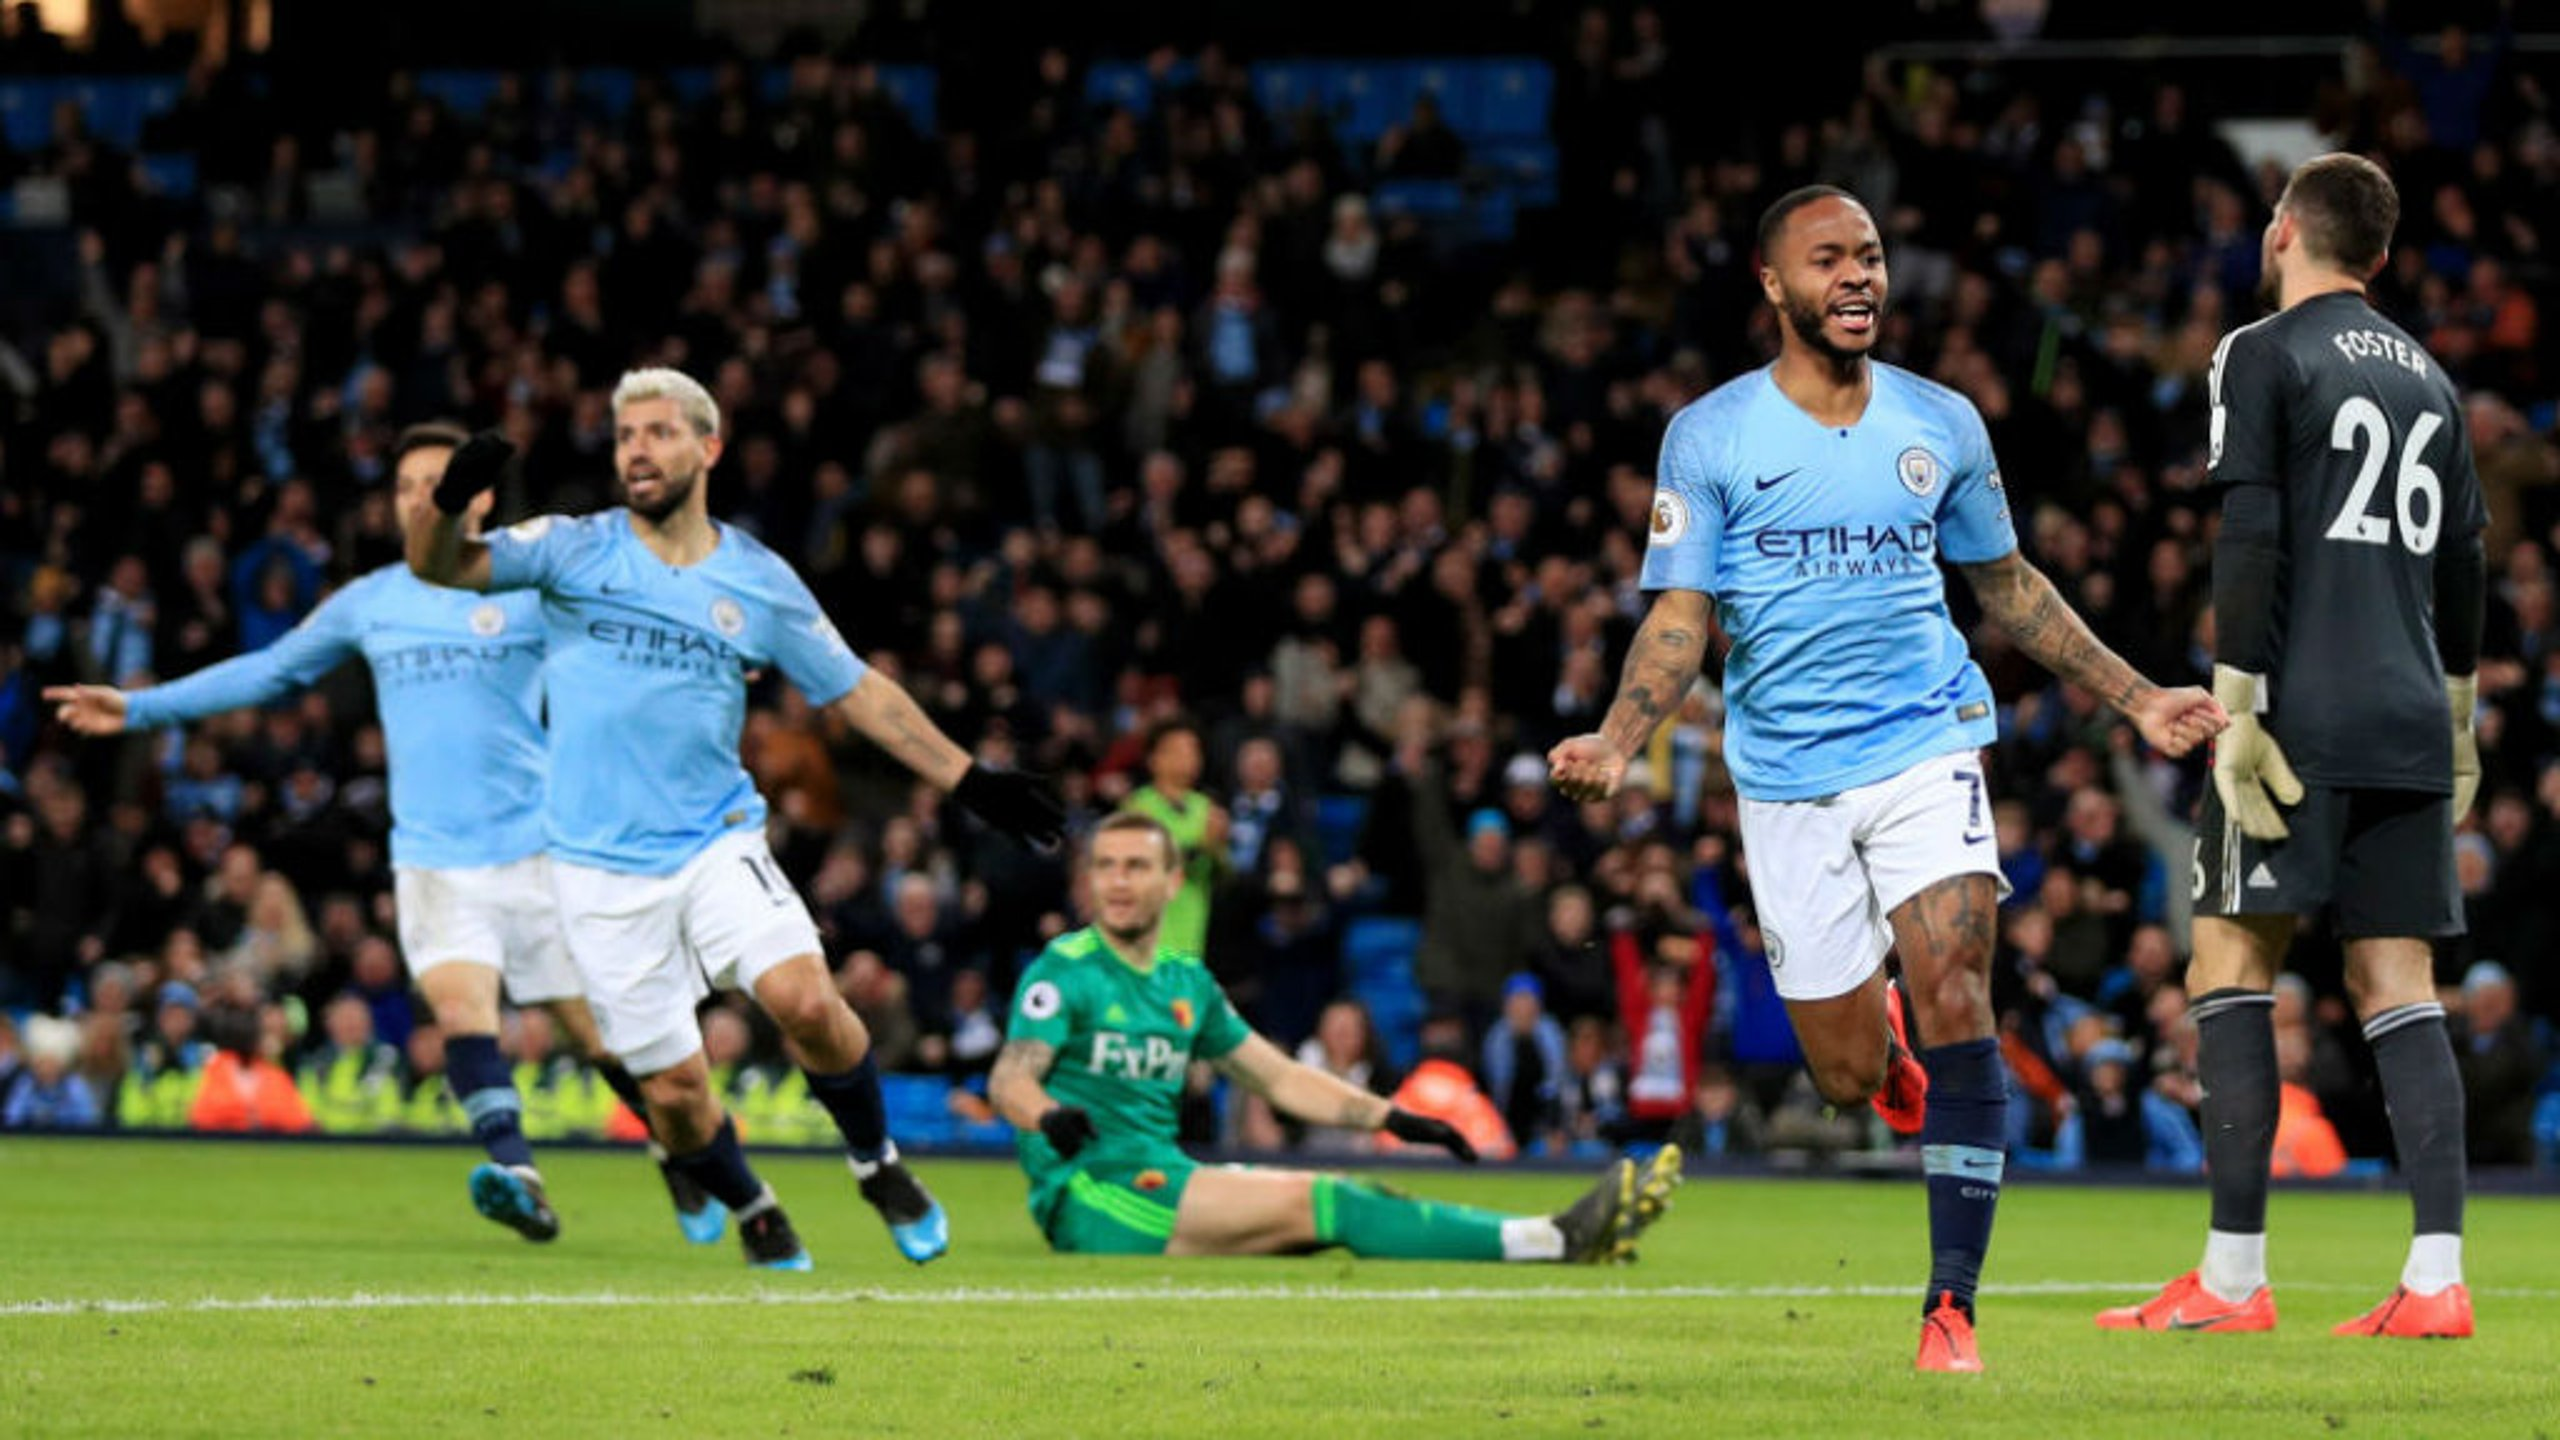 STRIKE ONE: Raheem Sterling is all smiles after netting the Blues' first goal